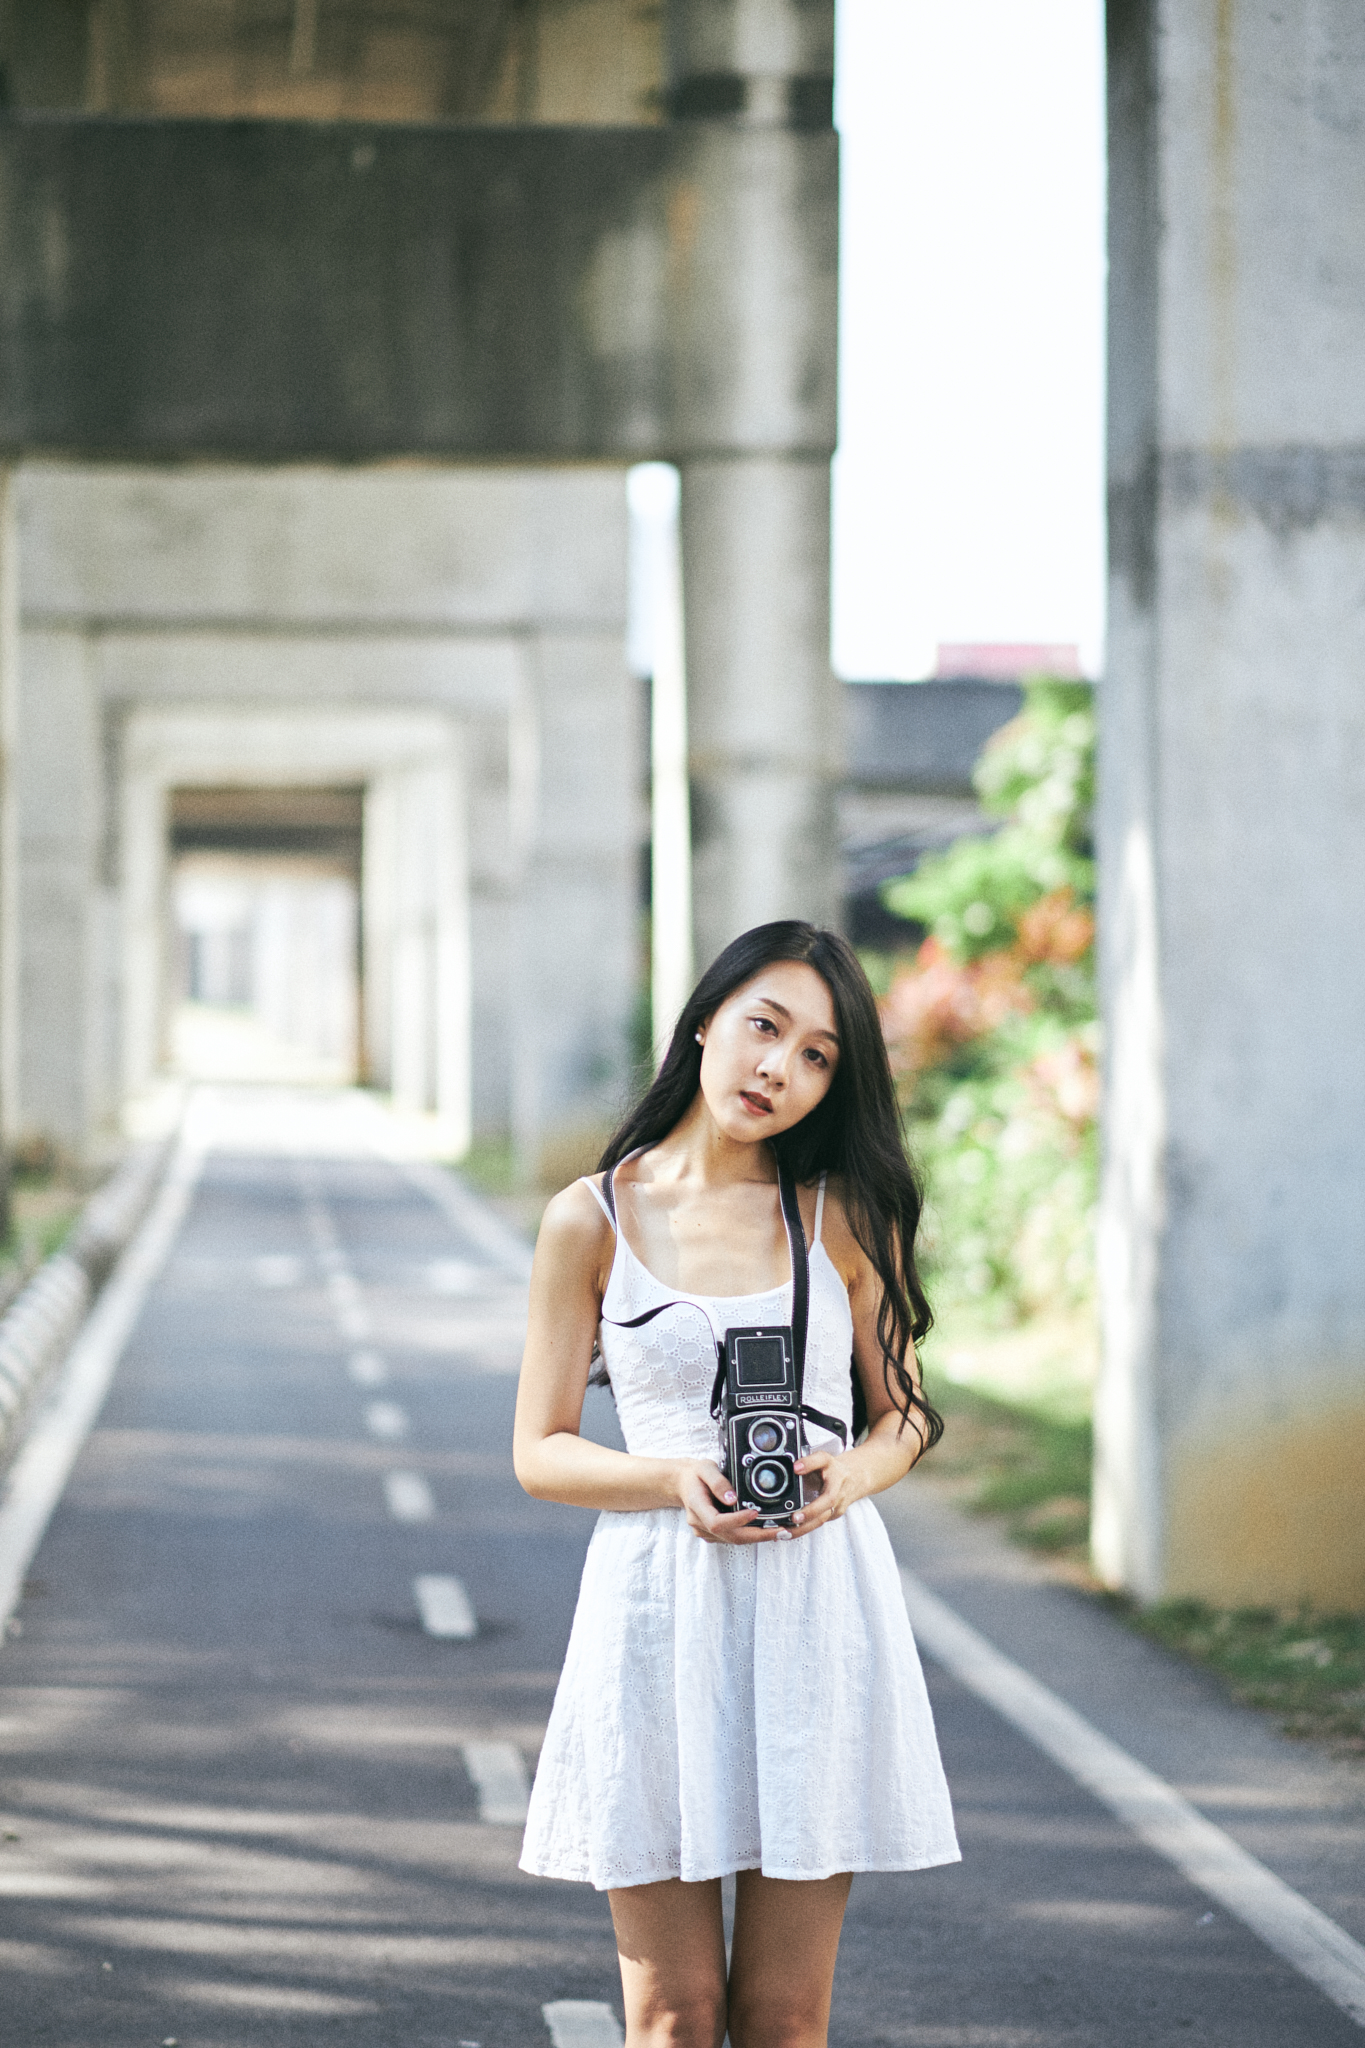 kim goh outdoor photography with marcus low malaysia